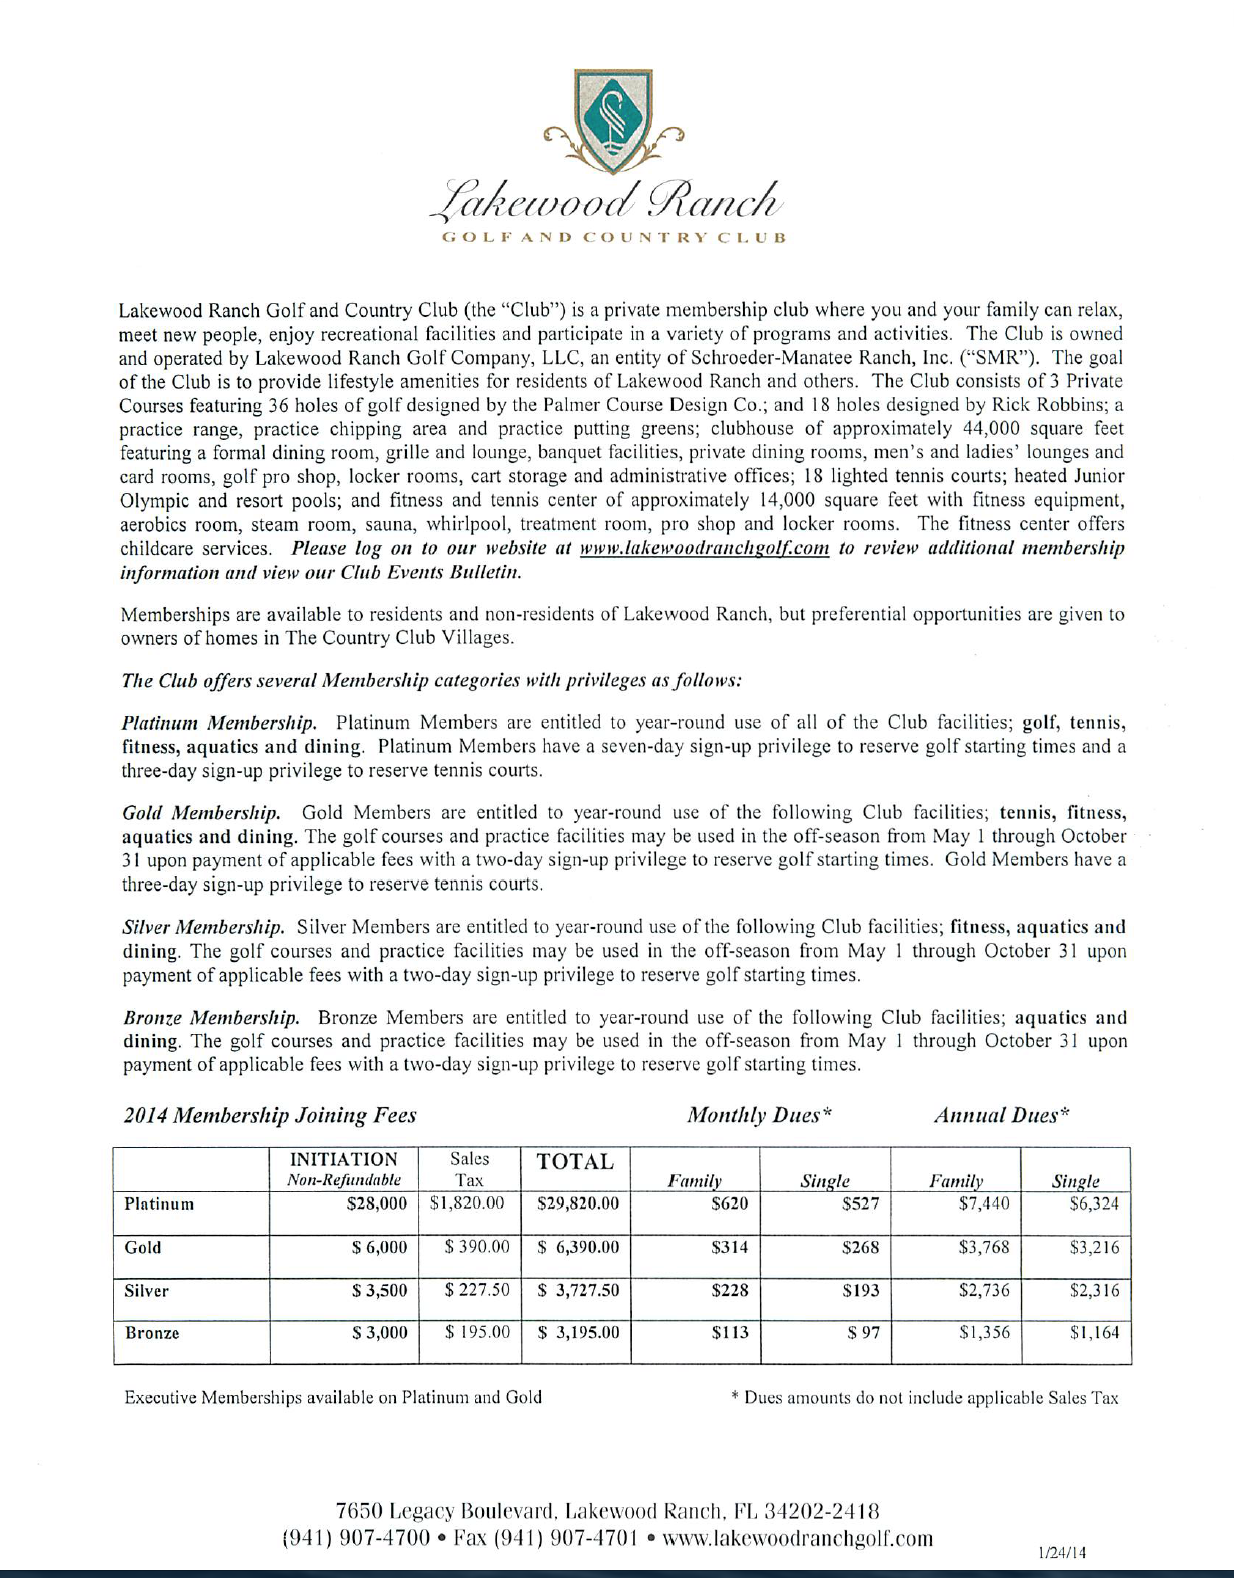 Lakewood Ranch Golf and Country Club Membership Fees Schedule for 2014 pg1